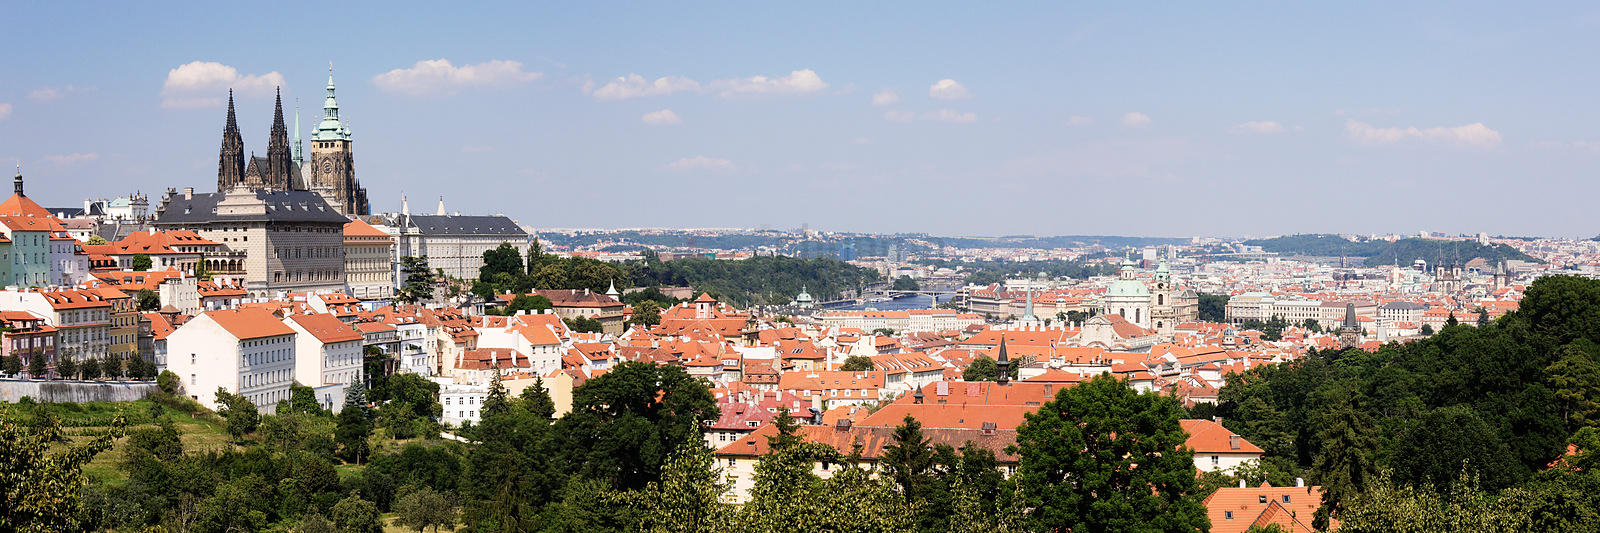 Prague Skyline including Prague Castle and Hradcany and St Vitus Cathedral